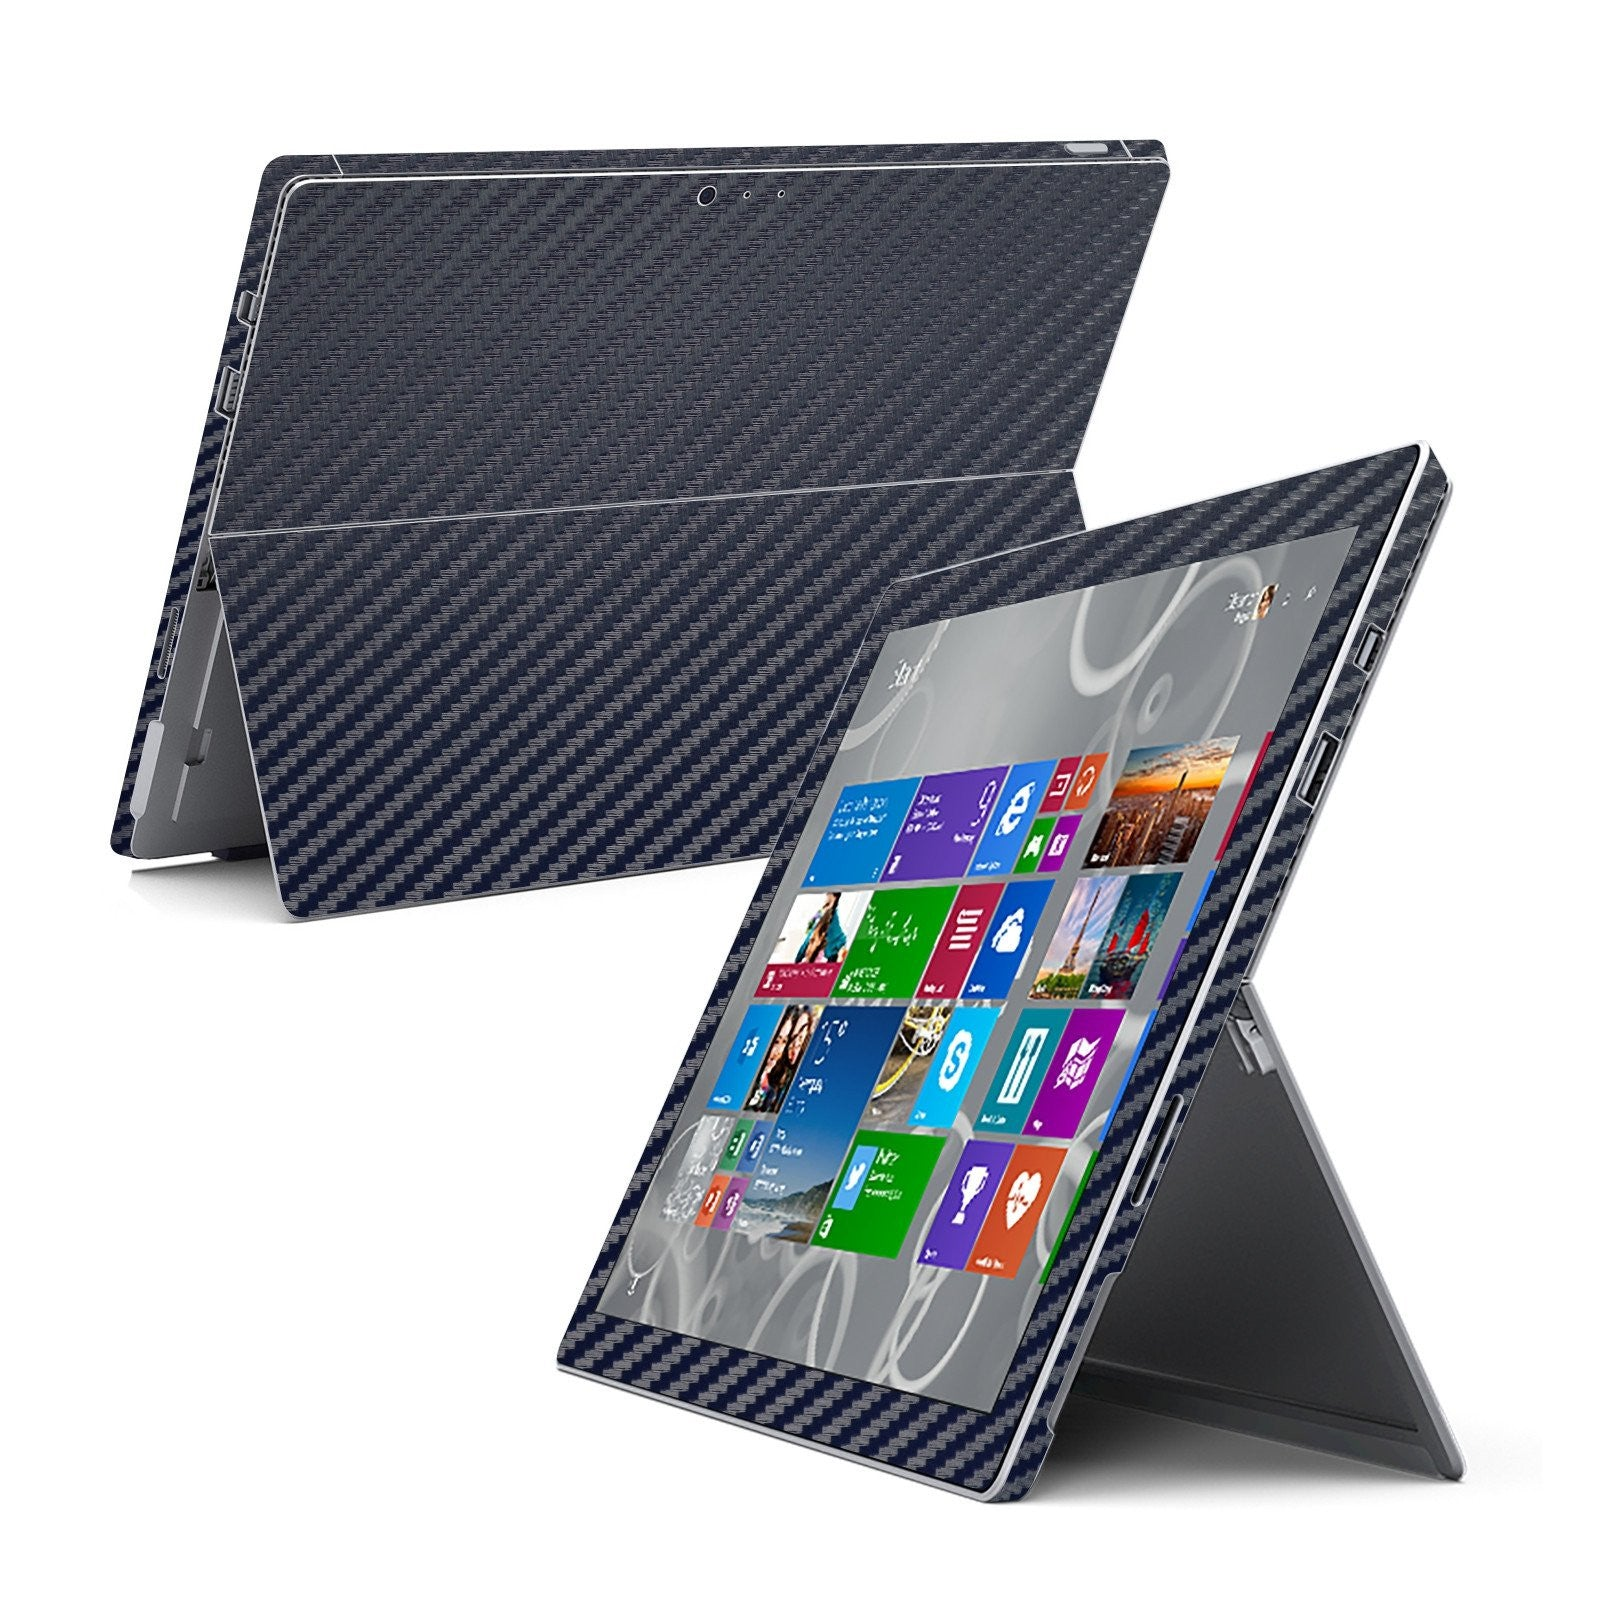 Microsoft Surface Pro 3 Navy Blue CARBON Fibre Skin Wrap Sticker Cover Decal Protector by EasySkinz